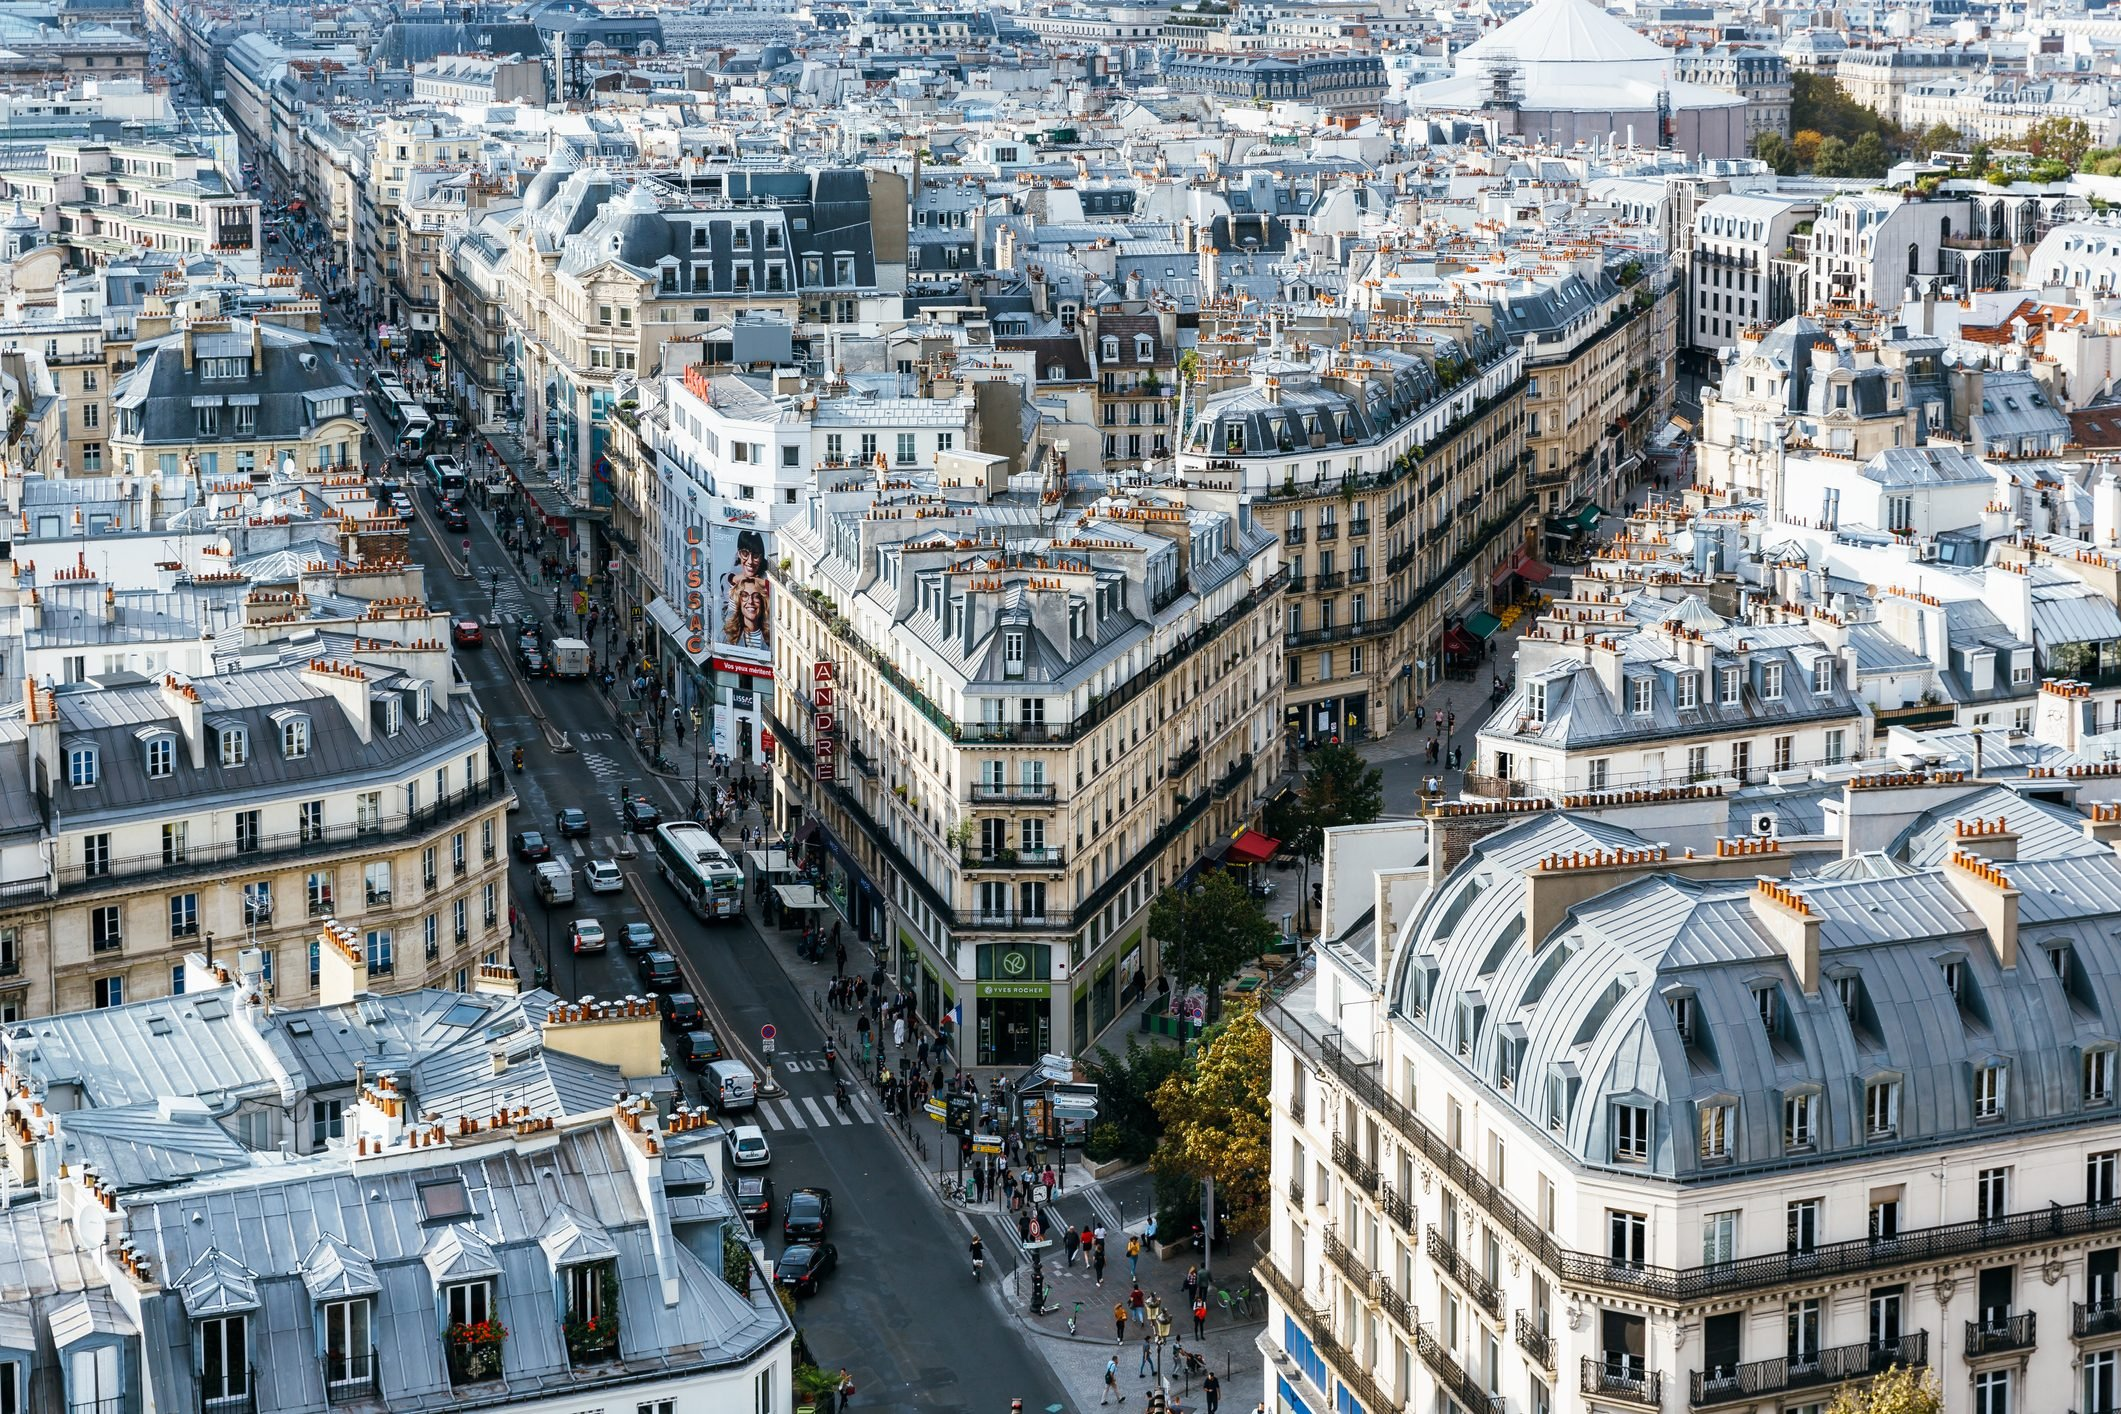 Aerial view of Paris city with streets and rooftops, Paris, France